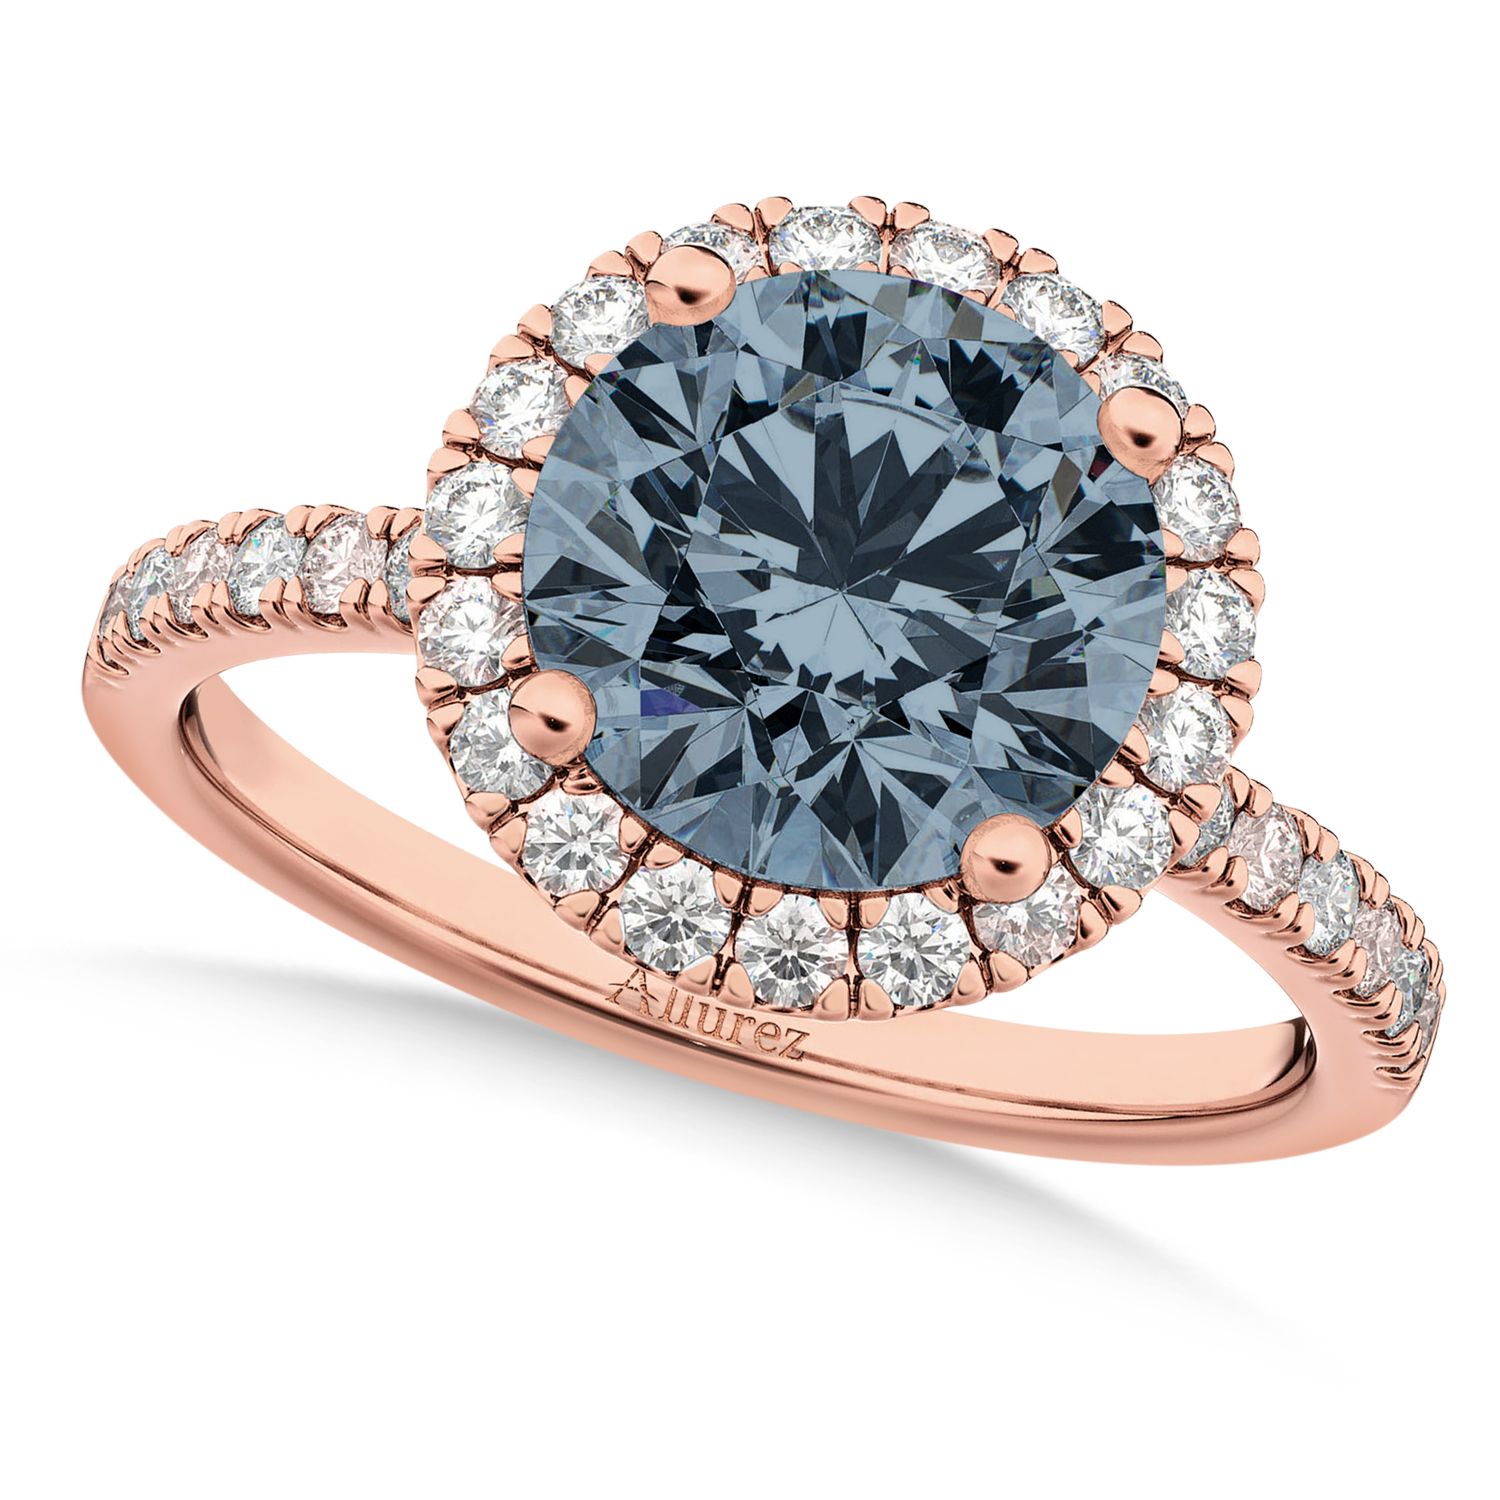 Halo Gray Spinel & Diamond Engagement Ring 18K Rose Gold 1.90ct